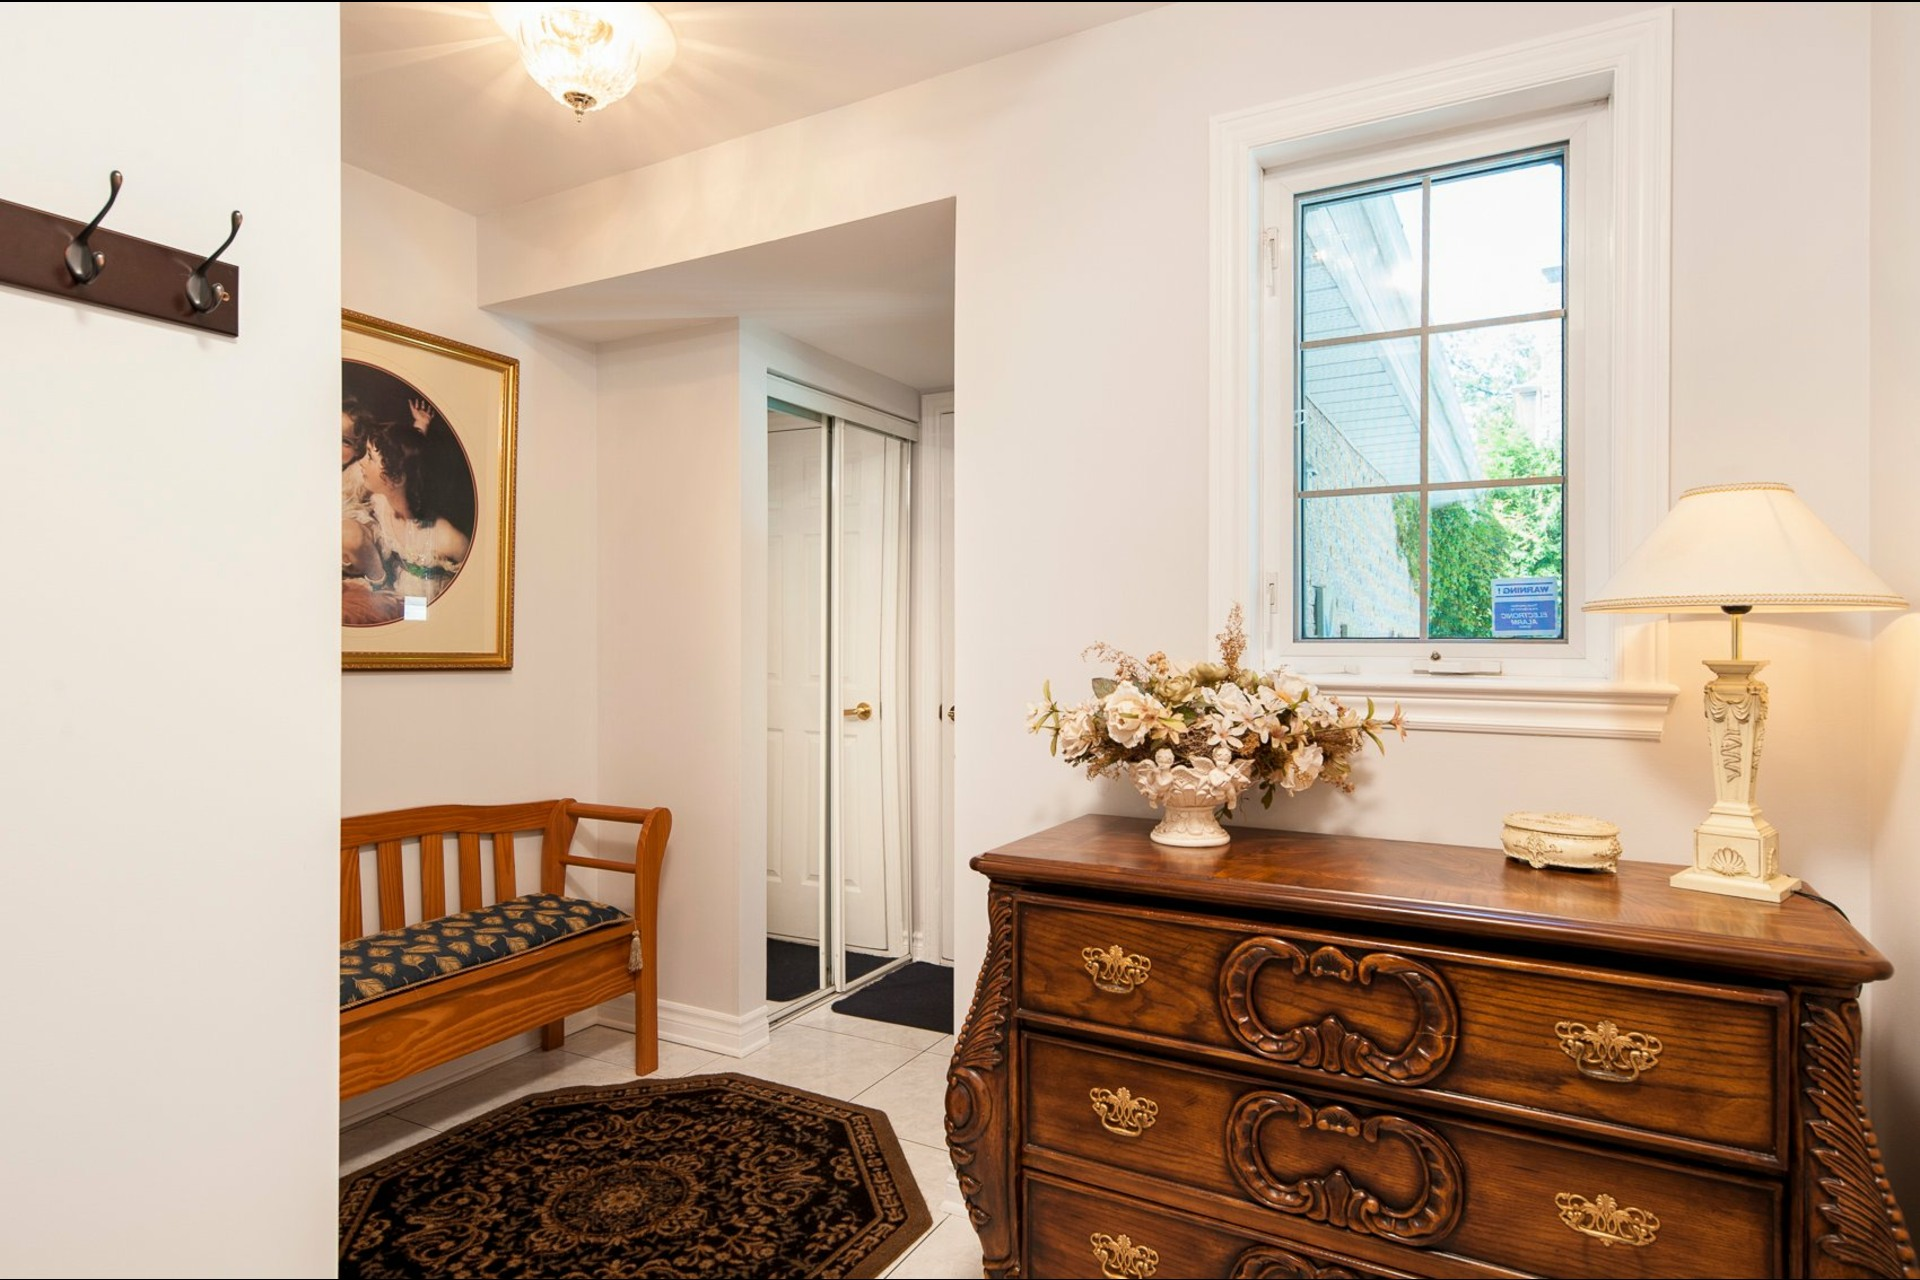 image 15 - House For sale Beaconsfield